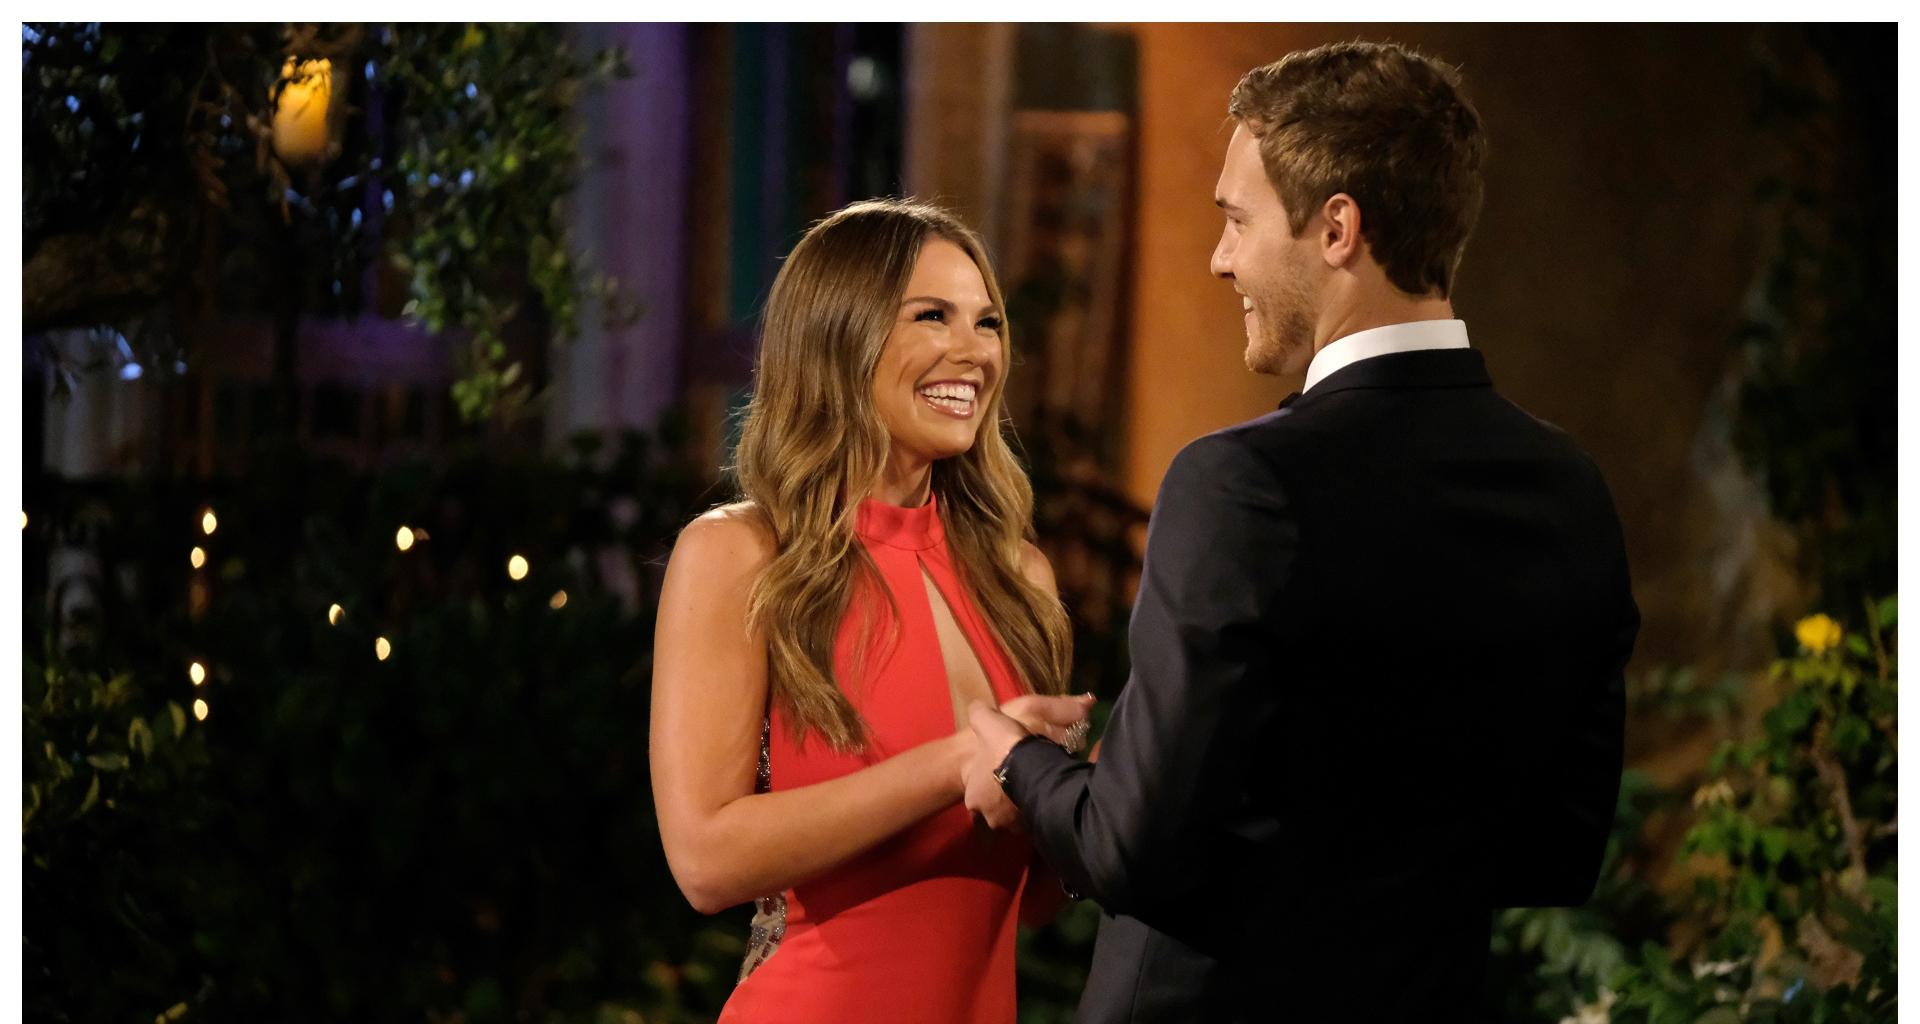 Hannah Brown Talks About Her Love Life Amid Peter Weber Romance Rumors